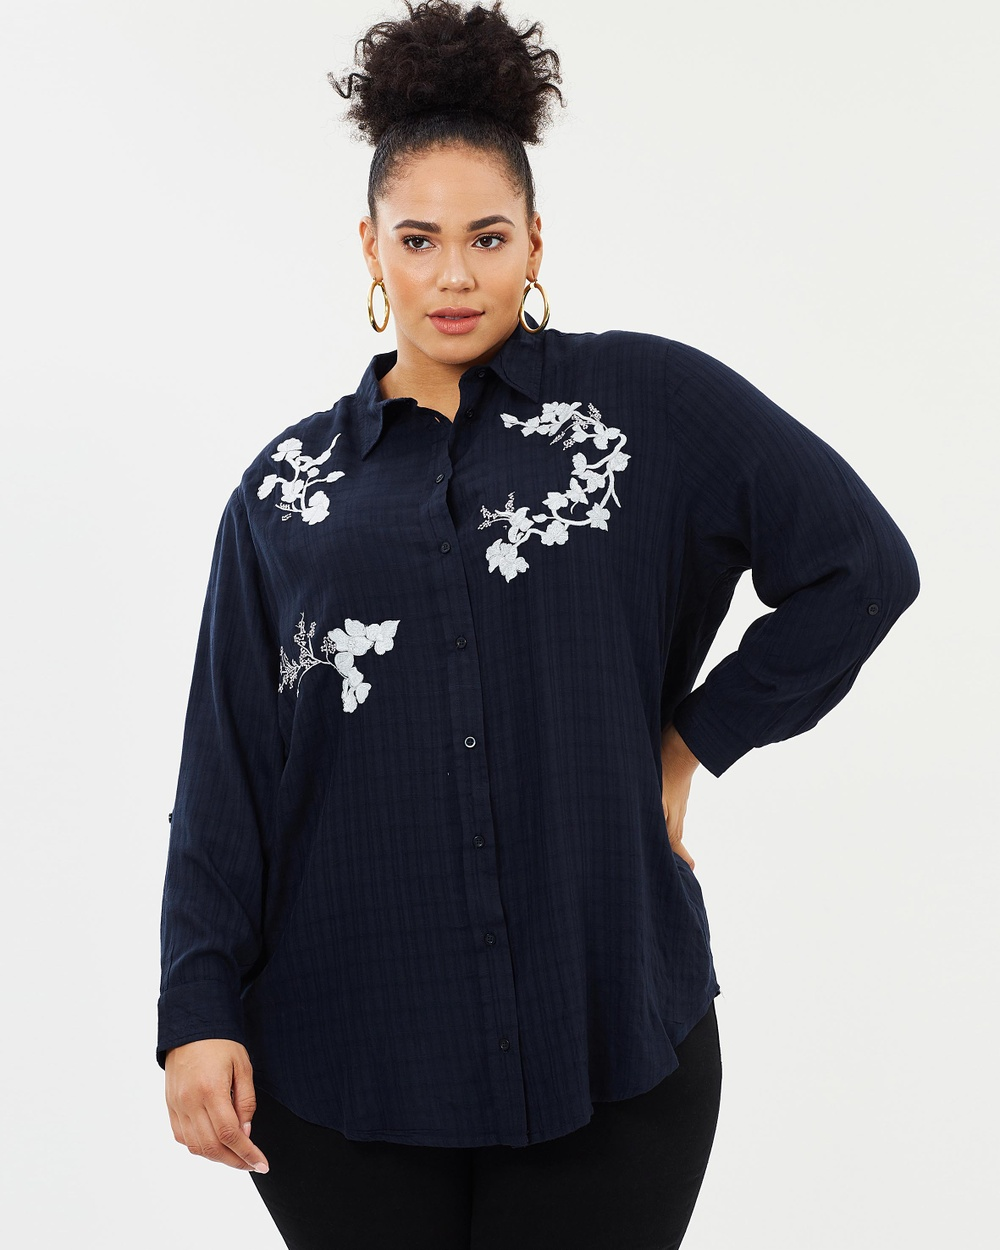 Photo of EVANS EVANS Flower Embroidered Check Shirt Tops Navy Flower Embroidered Check Shirt - For fashion that flatters and celebrates your curves, look no further than EVANS. With a range of on-trend dresses, chic office-ready separates and weekend staples designed with the fuller figure in mind, EVANS is the perfect addition to any style-savvy wardrobe. Our model is wearing a size UK 18 top. She is 179.1cm (5'10.5